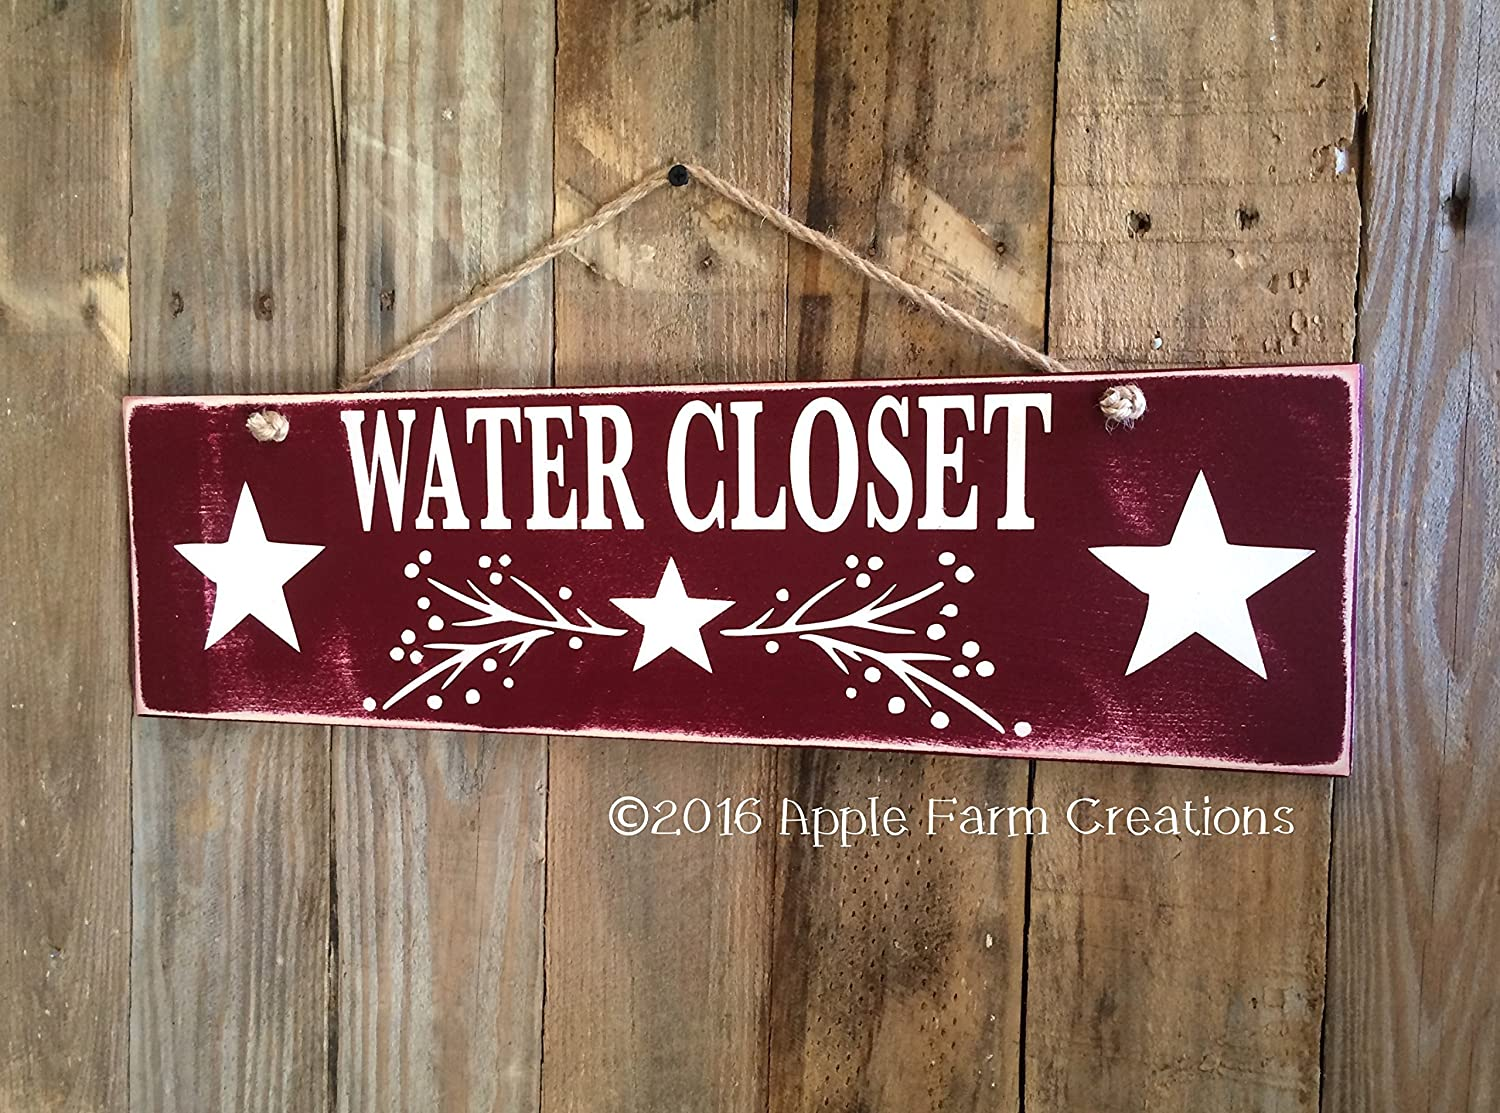 Amazon.com: Burgundy WATER CLOSET Wood Sign with Painted Garland ...